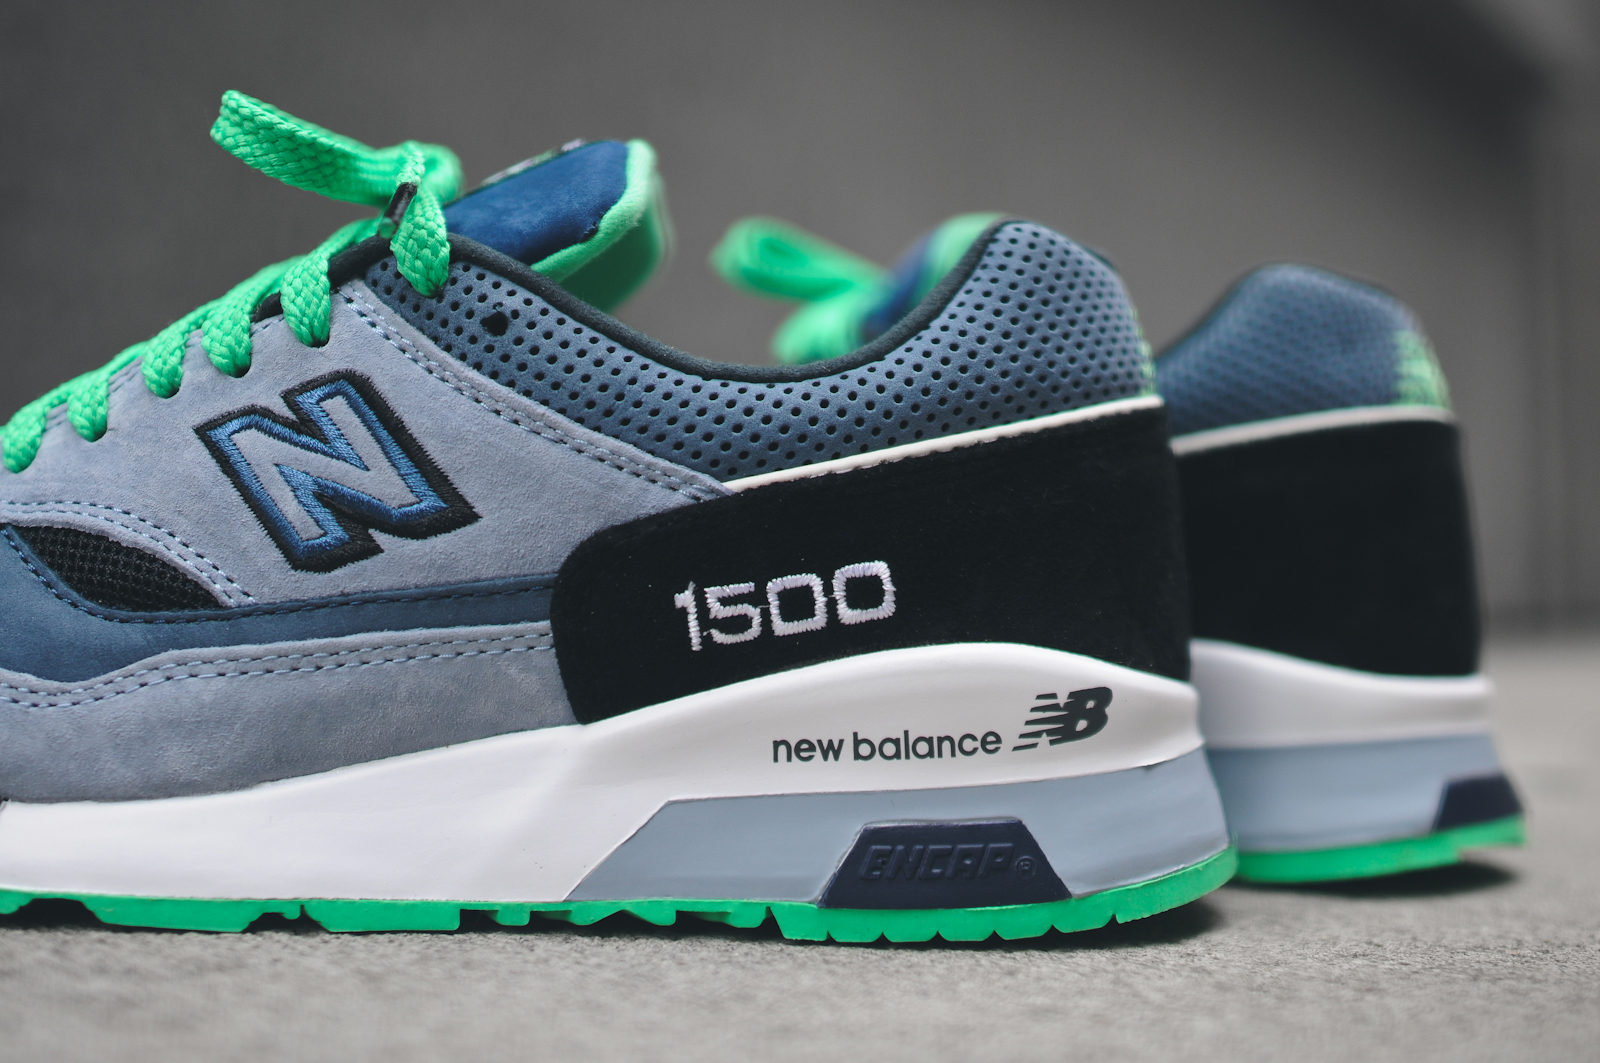 new balance 4ps Latest information about new balance more information about new balance shoes including release dates, prices and more.